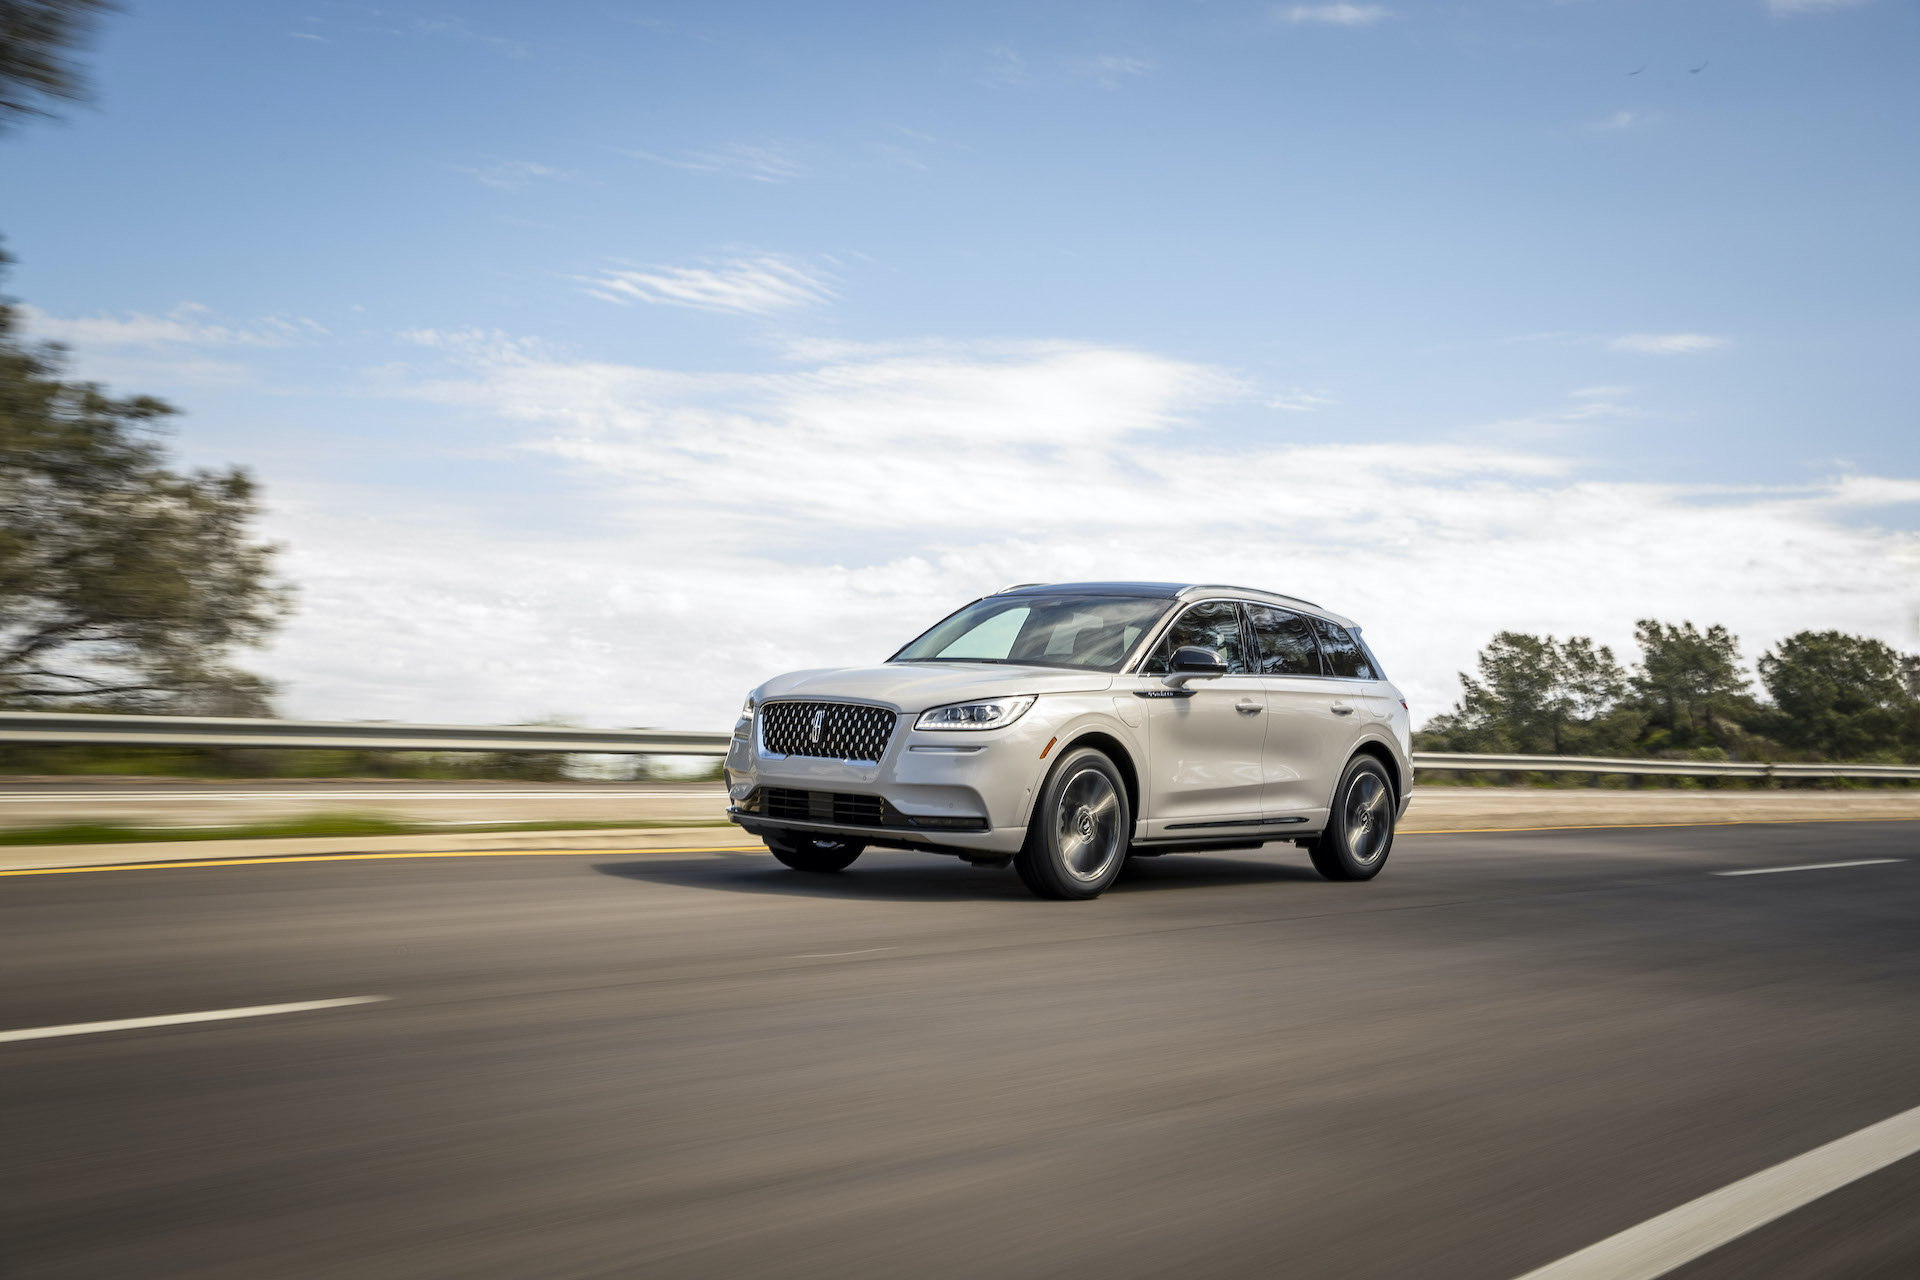 Lincoln Corsair Grand Touring plug-in hybrid rated at 28 electric miles, 33 mpg